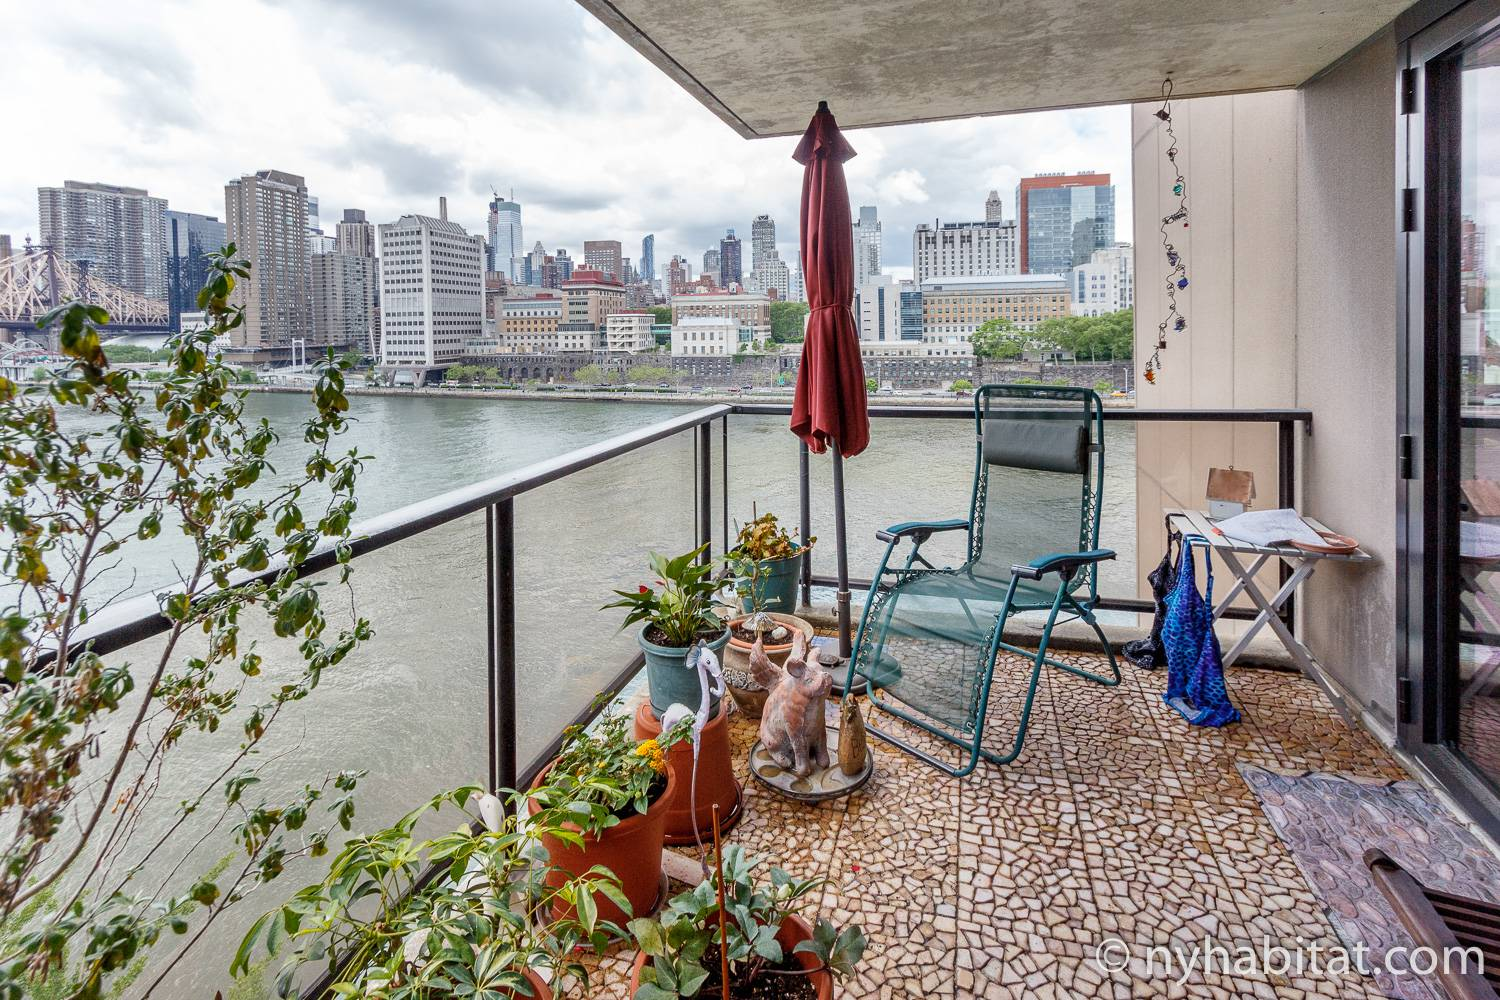 Image of balcony of NY-14708 overlooking the East River.